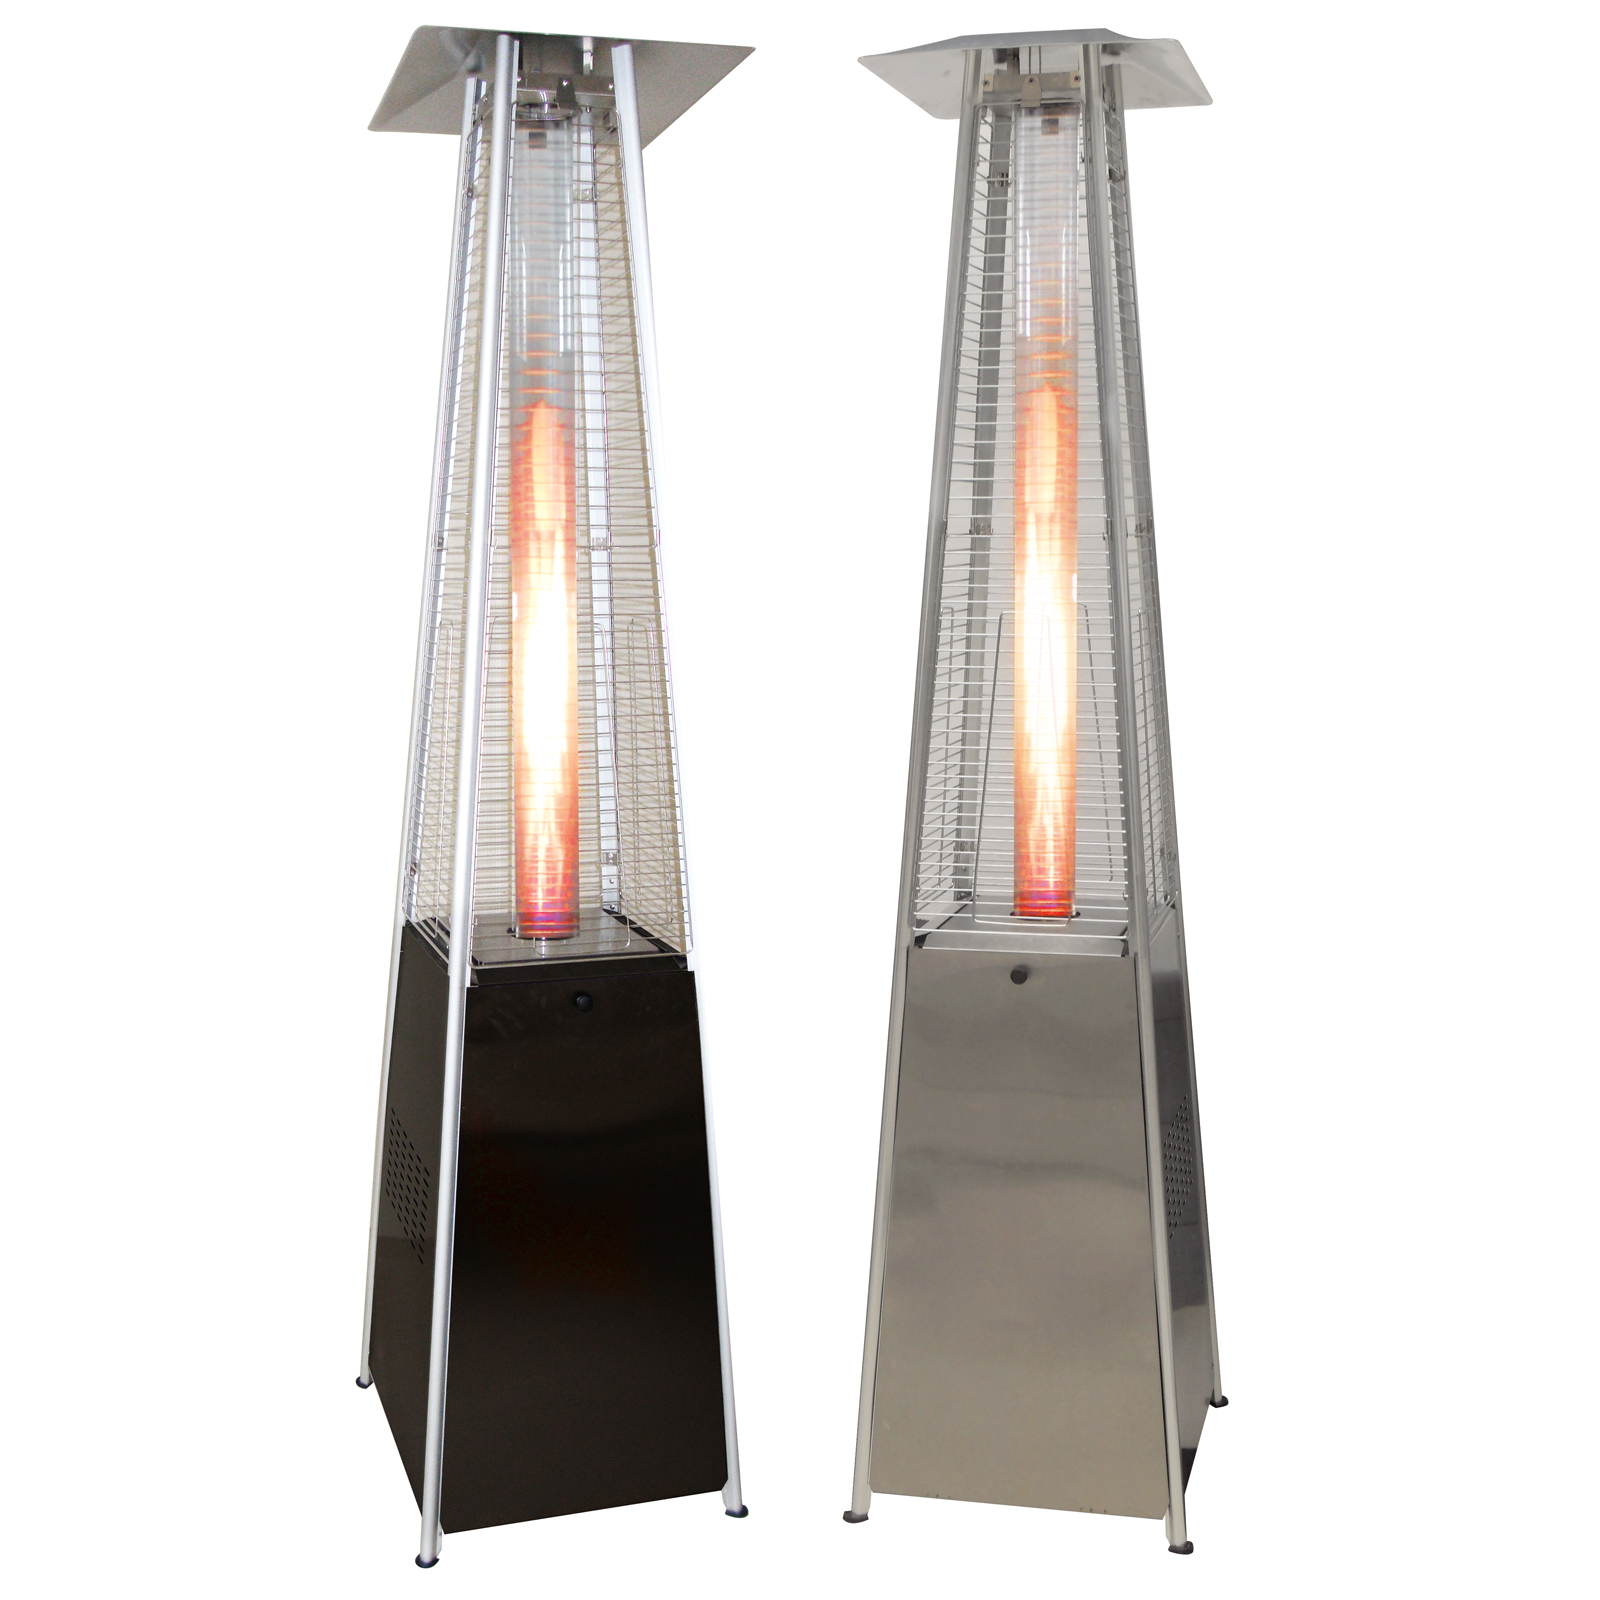 Pyramid Outdoor Patio Heater